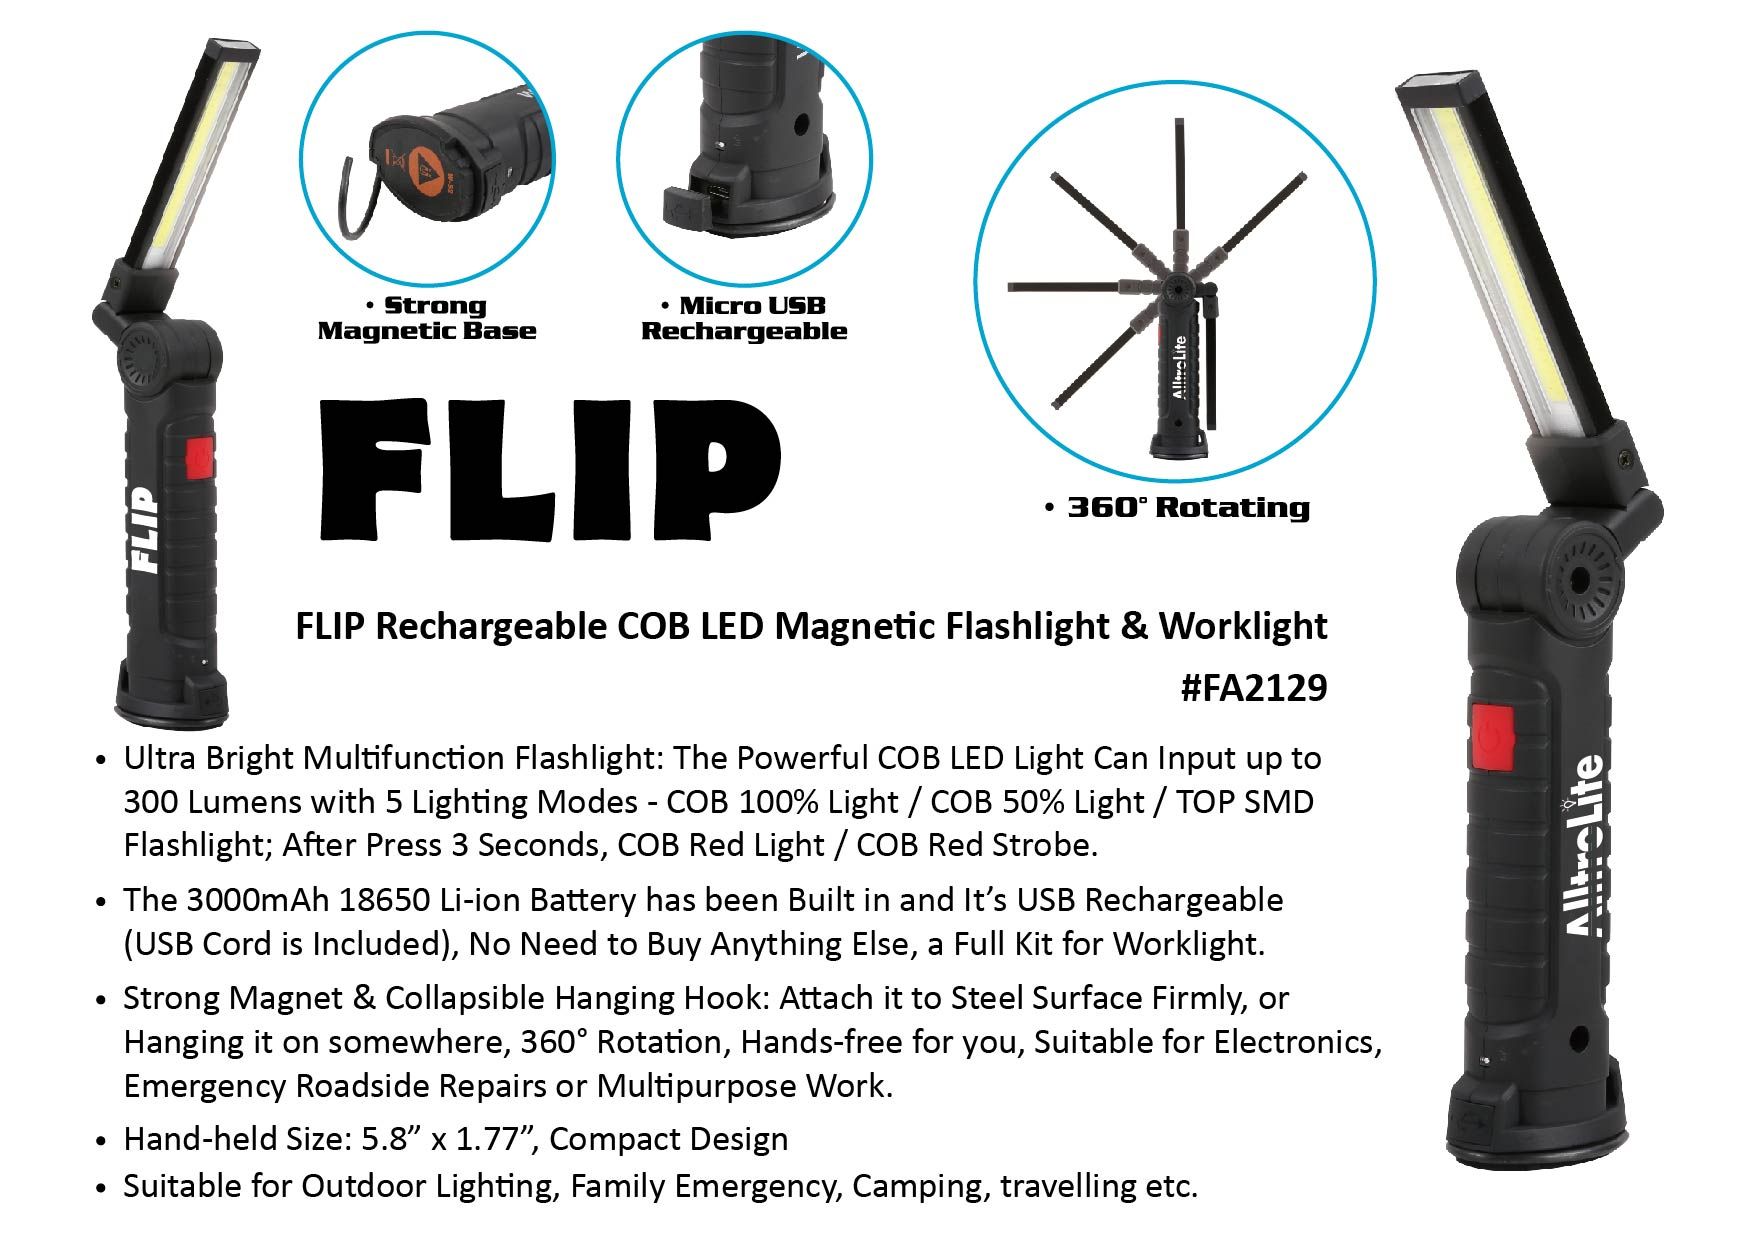 Rechargeable 360 WorkLight (Flip FA2129)